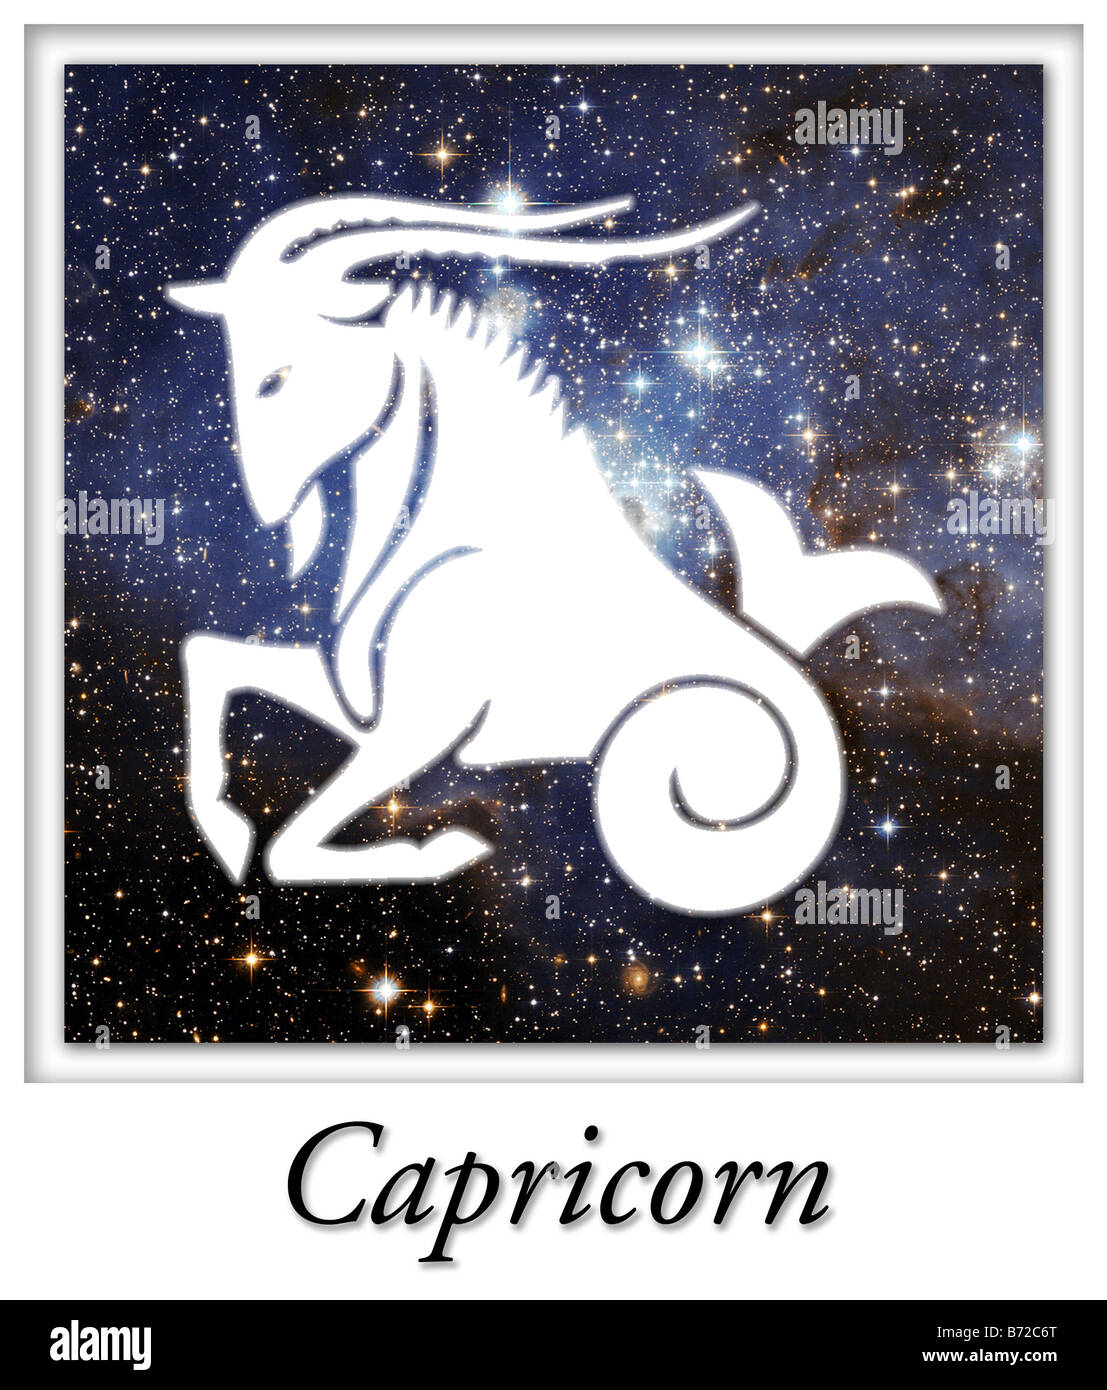 Capricorn Astrological Astrology Horoscope Birth Sign - Stock Image